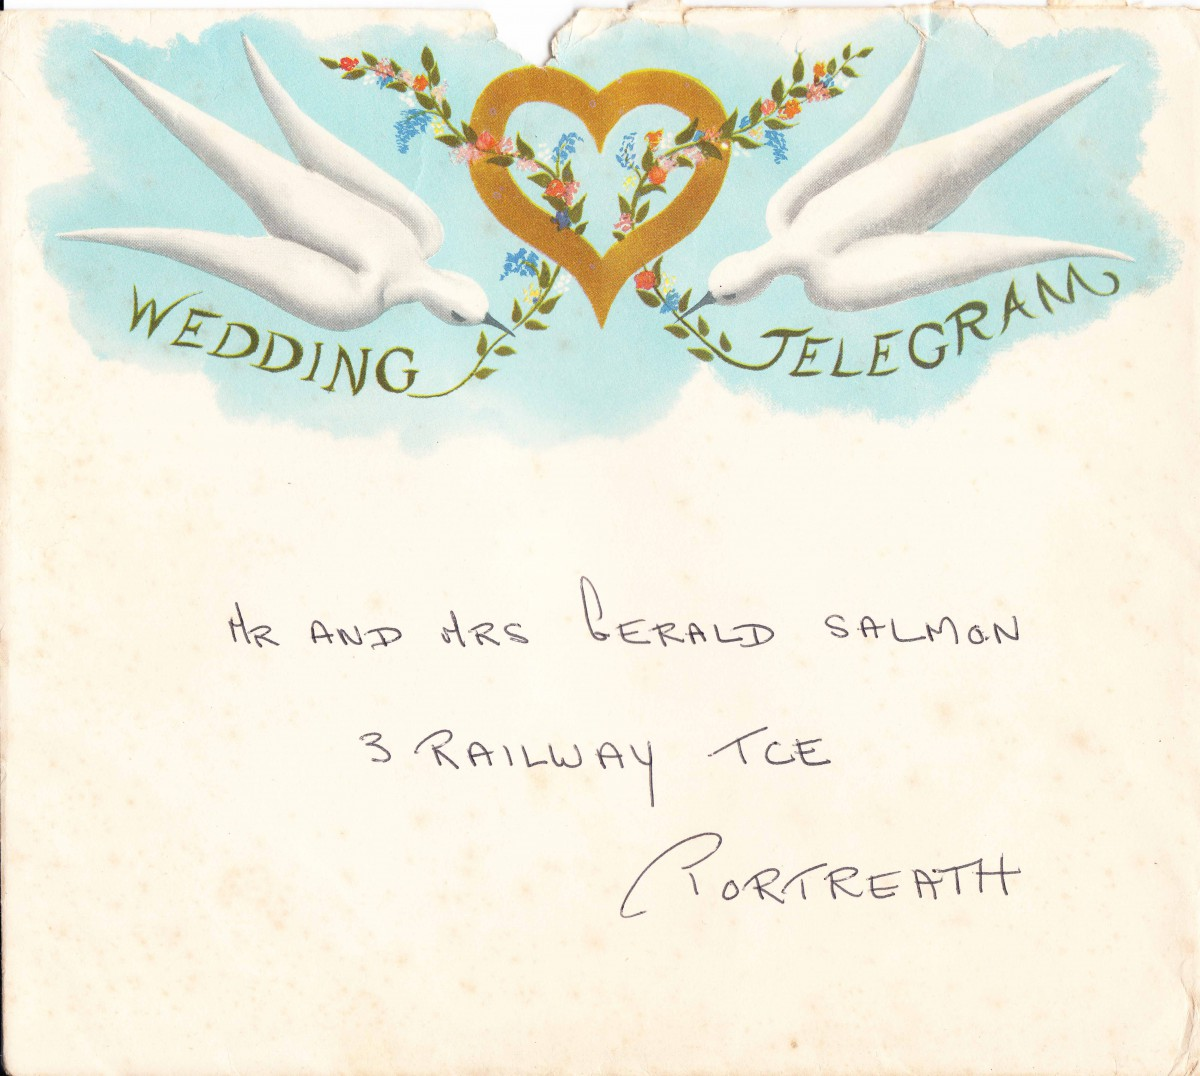 Decorative envelope from donated telegram